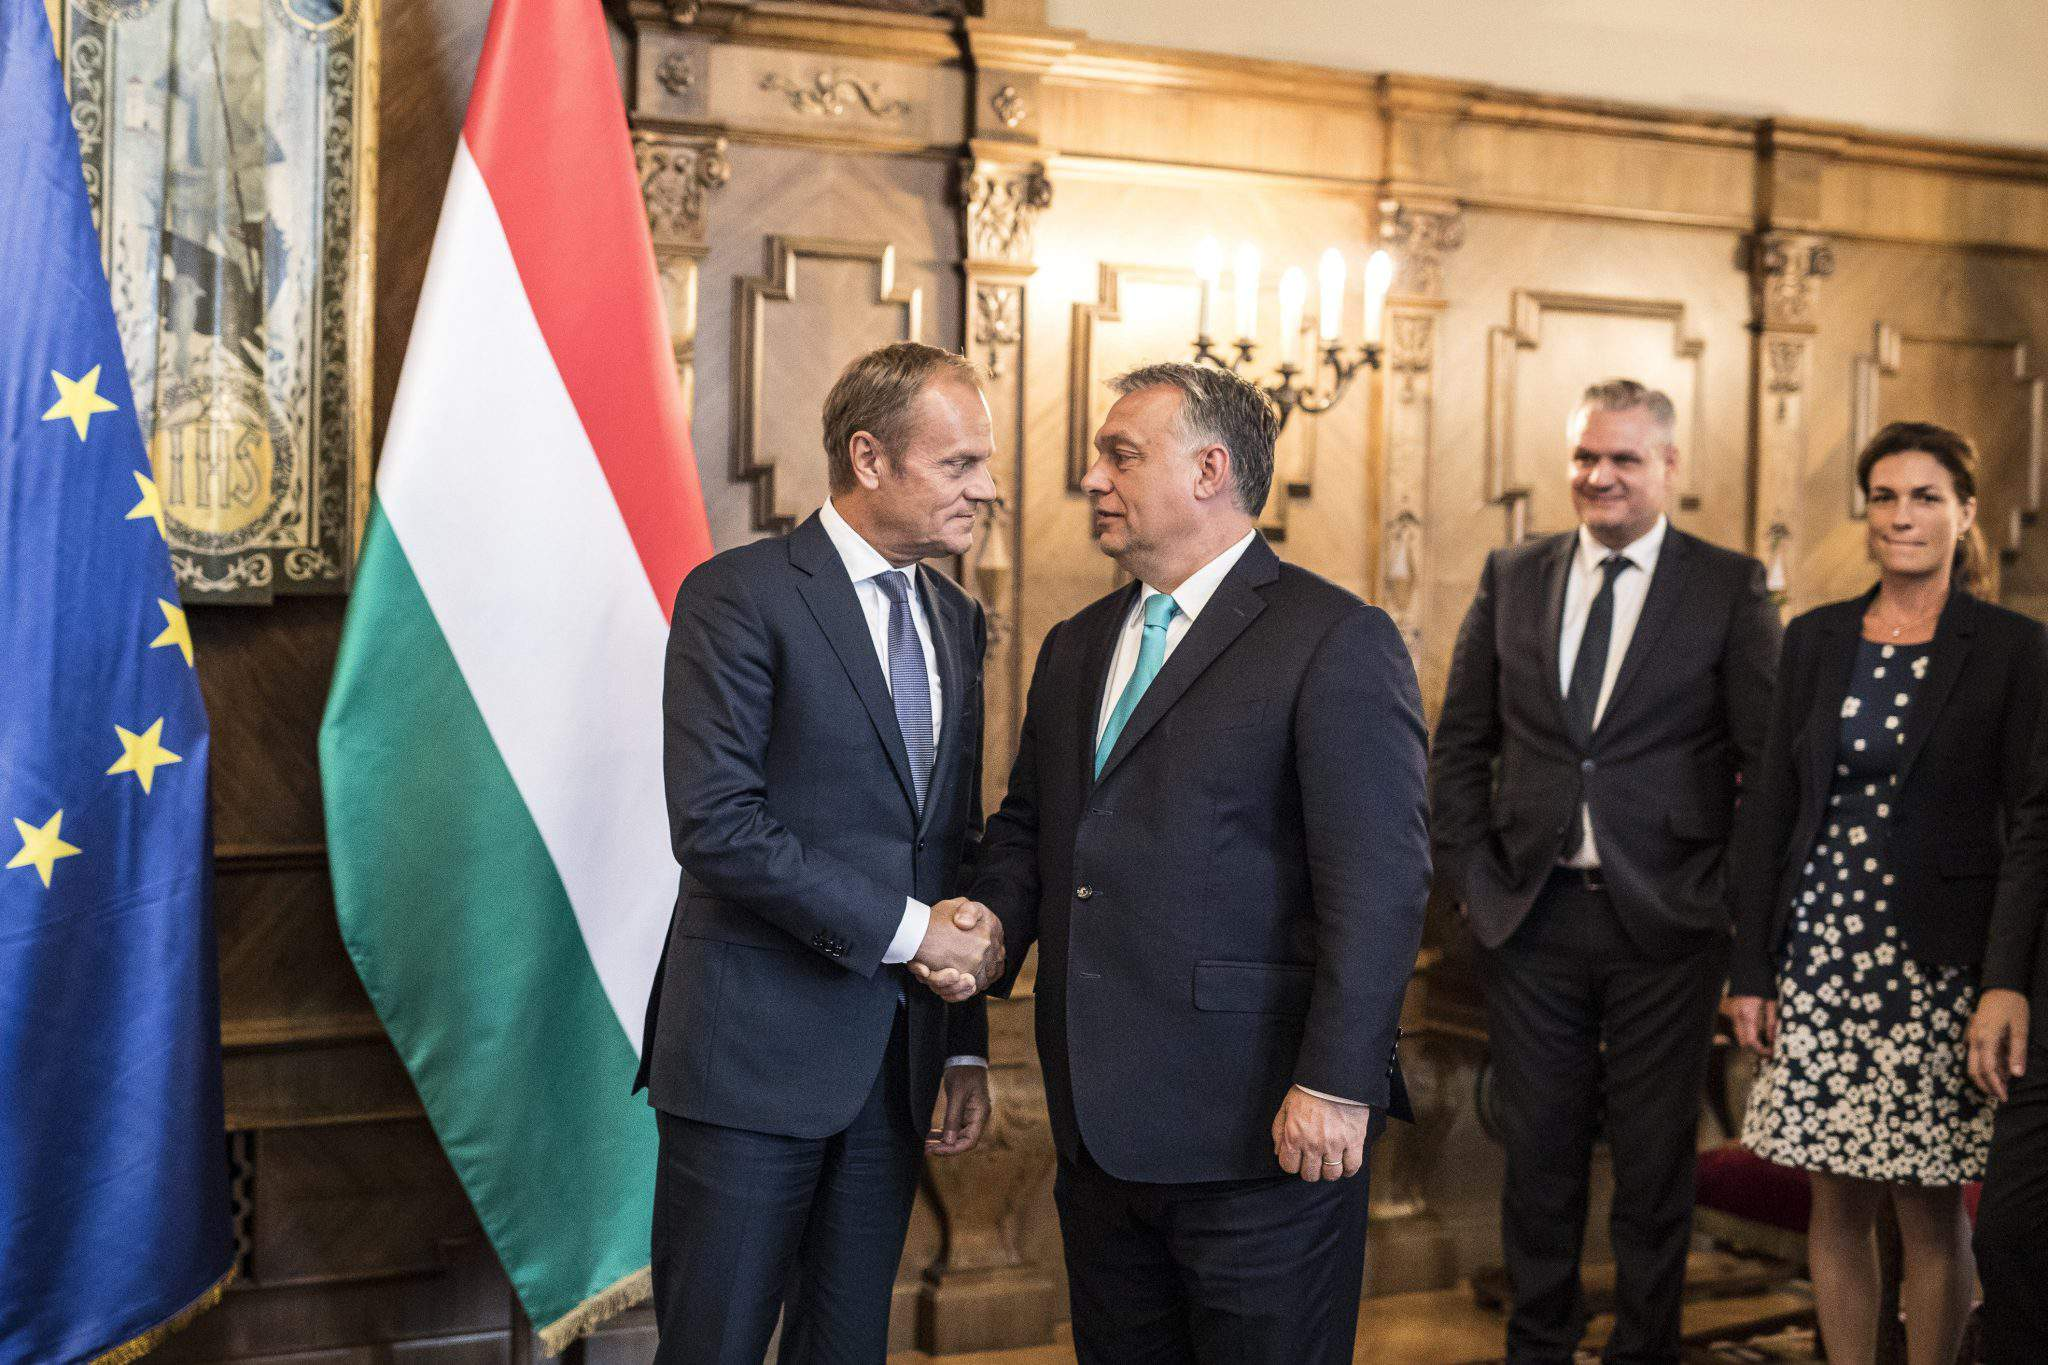 Hungary European Union Orbán Tusk